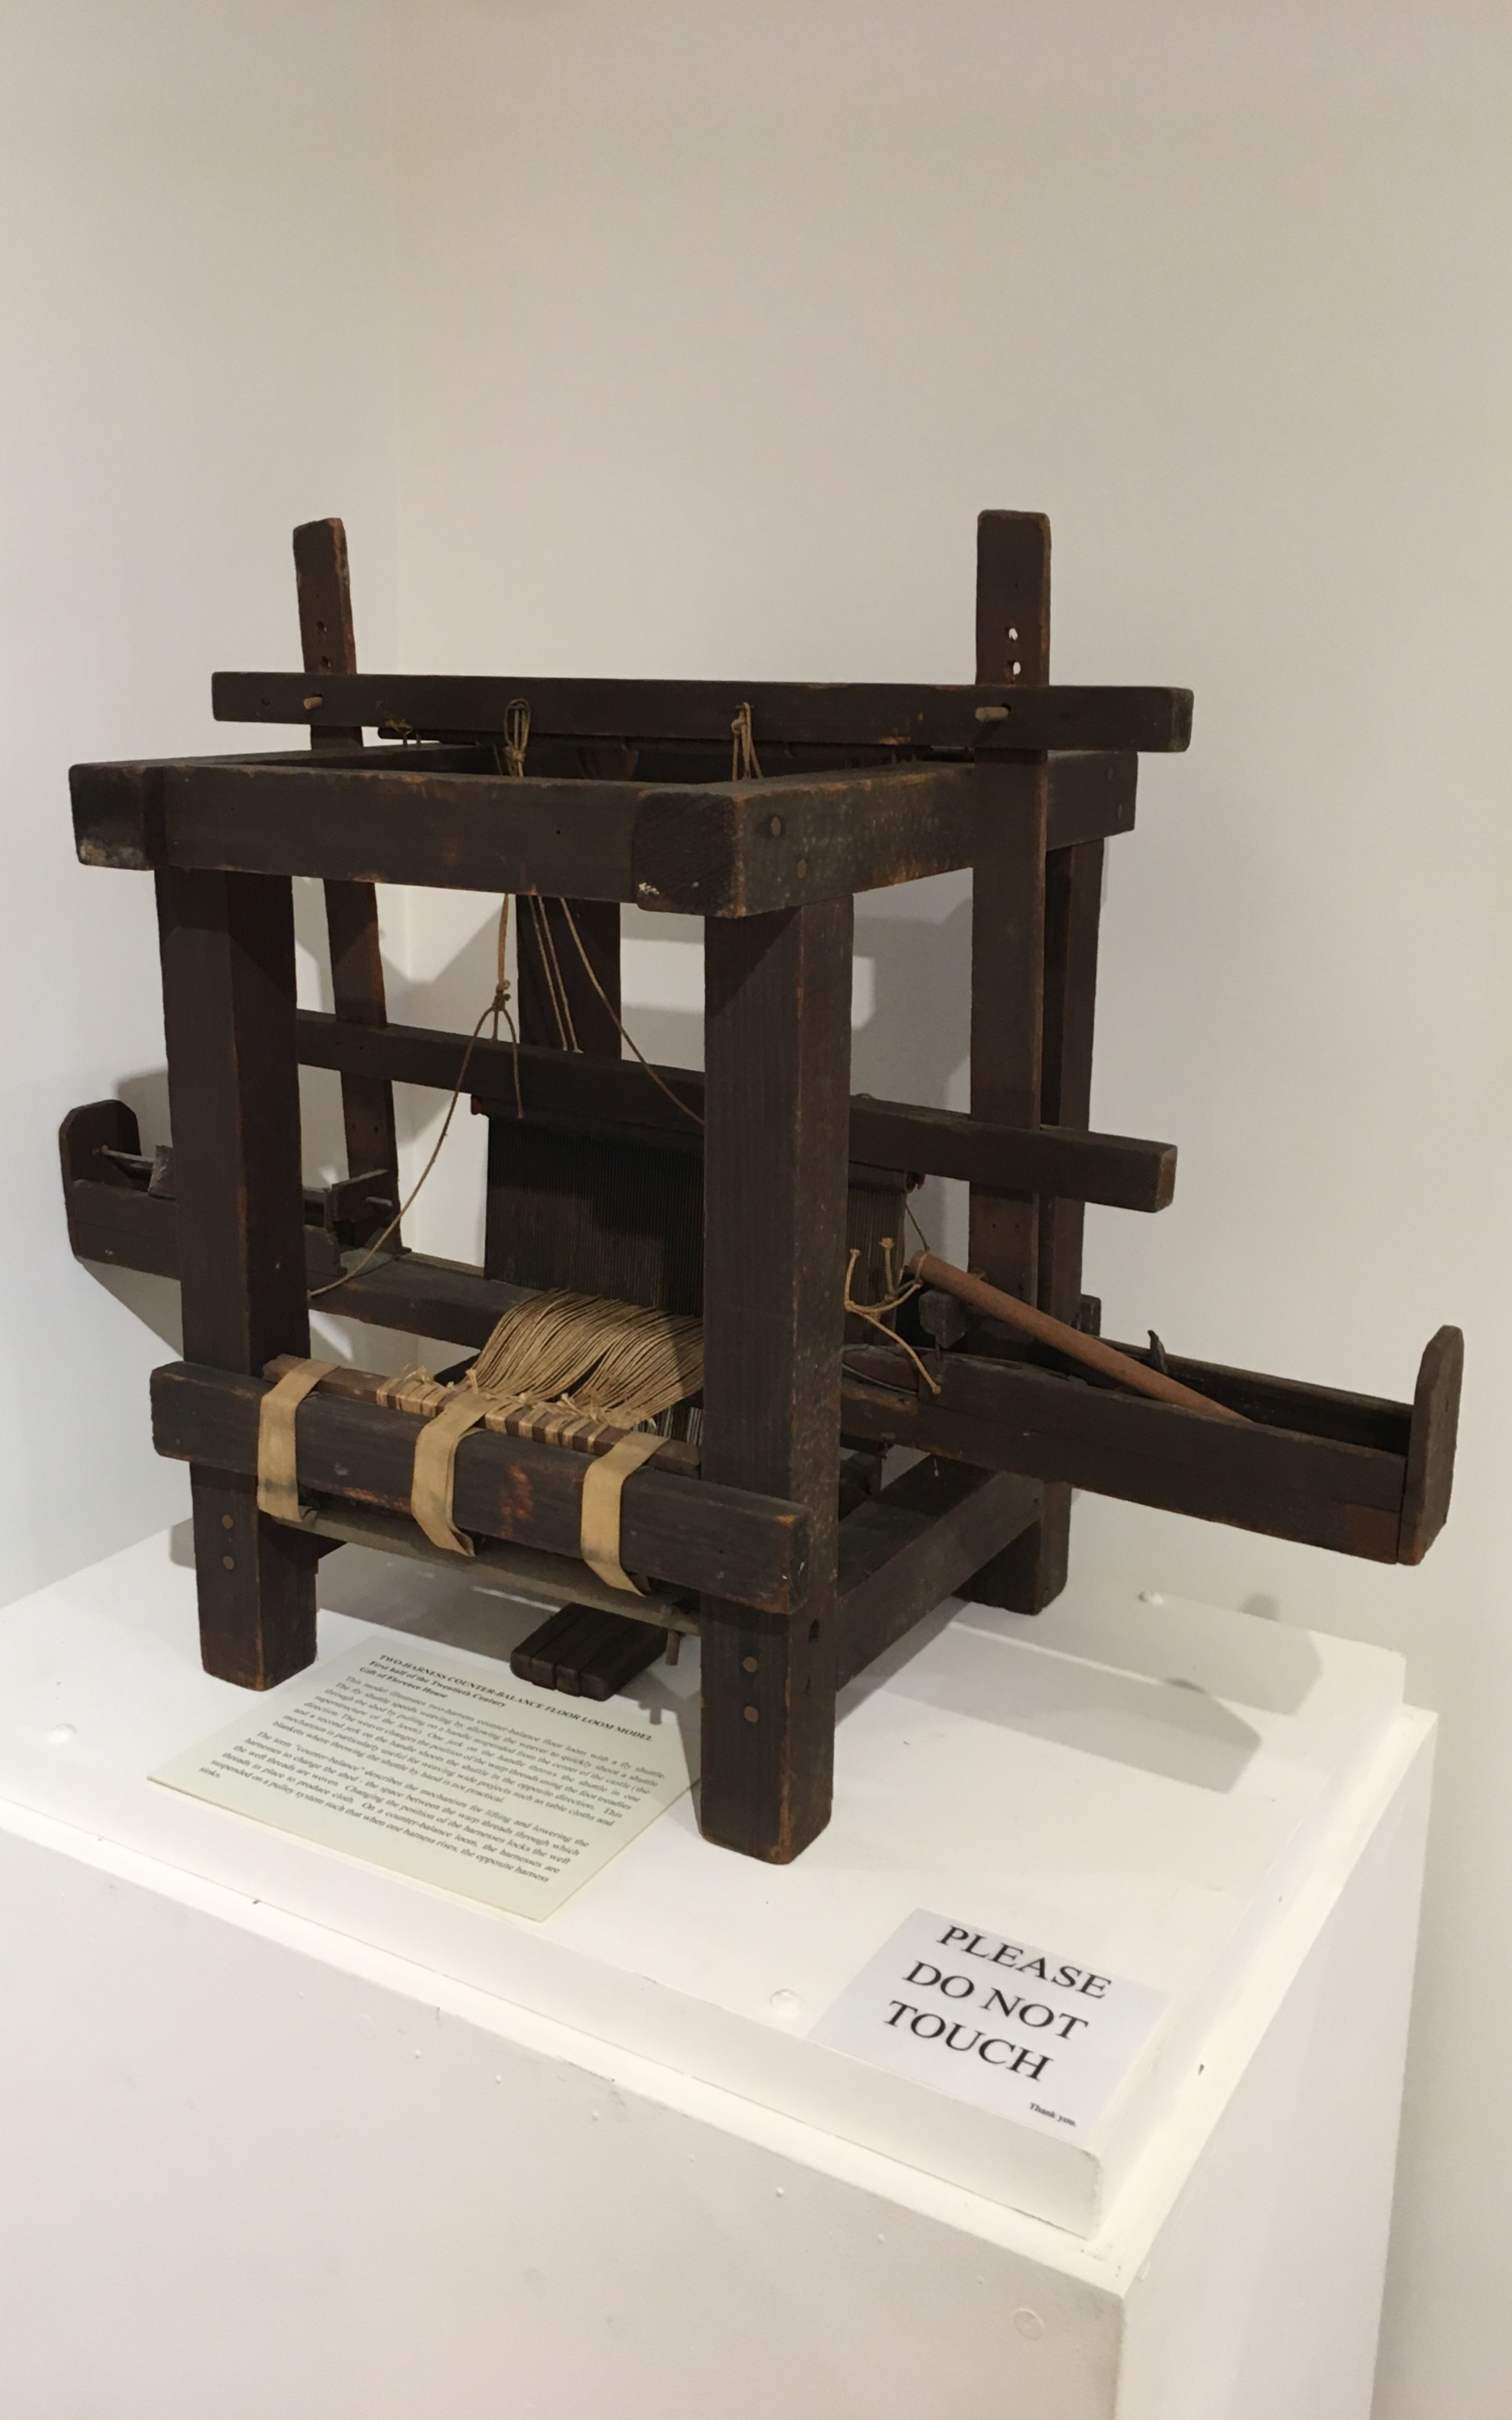 """<h3>Two-Harness Counter-Balance Floor Loom Model</h3> <br> <p><strong>First half of the Twentieth Century</strong></p> <p><strong>Gift of Florence House</strong></p> <br> <p>This model illustrates two-harness counter-balance floor loom with a fly shuttle. The fly shuttle speeds weaving by allowing the weaver to quickly shoot a shuttle through the shed by pulling on a handle suspended from the center of the castle (the superstructure of the loom). One jerk on the handle throws the shuttle in one direction. The weaver changes the position of the warp threads using the foot treadles and a second jerk on the handle shoots the shuttle in the opposite direction. This mechanism is particularly useful for weaving wide projects such as table cloths and blankets where throwing the shuttle by hand is not practical. The term """"counter-balance"""" describes the mechanism for lifting</p>"""